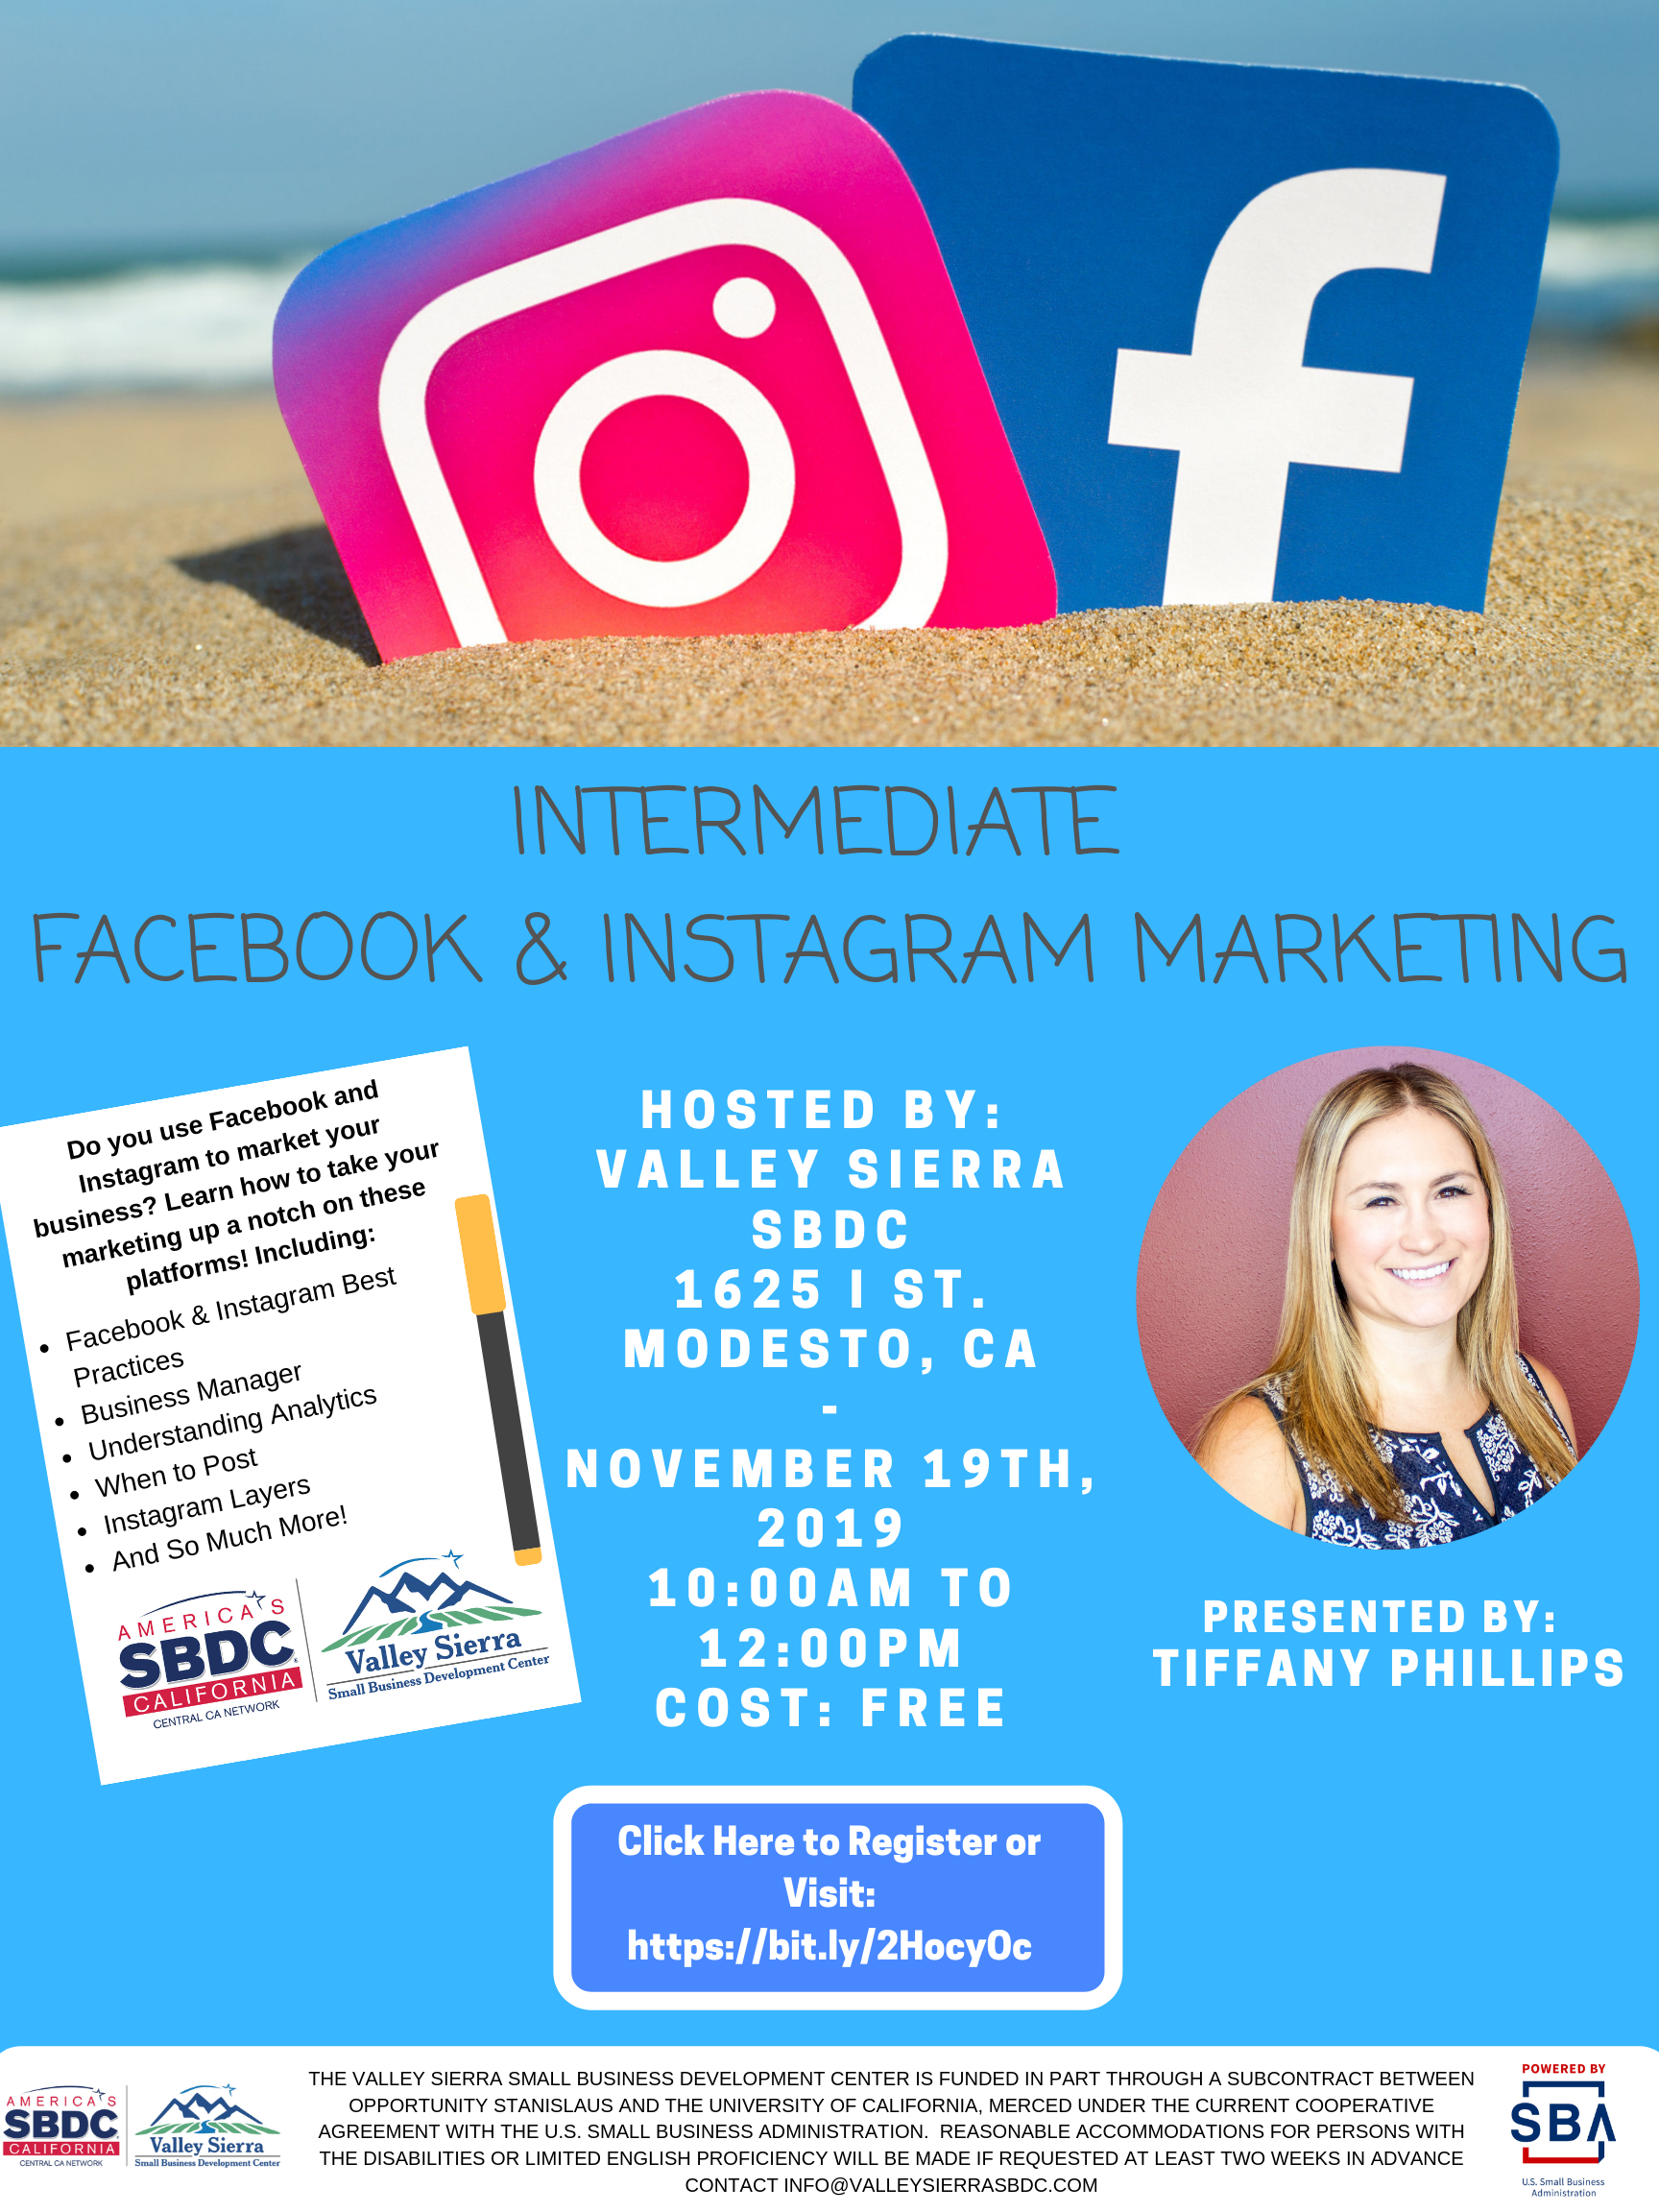 Event Flyer, INTERMEDIATE FACEBOOK & INSTAGRAM MARKETING PRESENTED BY: TIFFANY PHILLIPS  Do you use Facebook and Instagram to market your business? Learn how to take your marketing up a notch on these platforms! Including: Facebook & Instagram Best Practices, Business Manager, Understanding Analytics, When to Post, Instagram Layers And So Much More! 1625 I Street, Modesto Ca. November 19th, 2019.